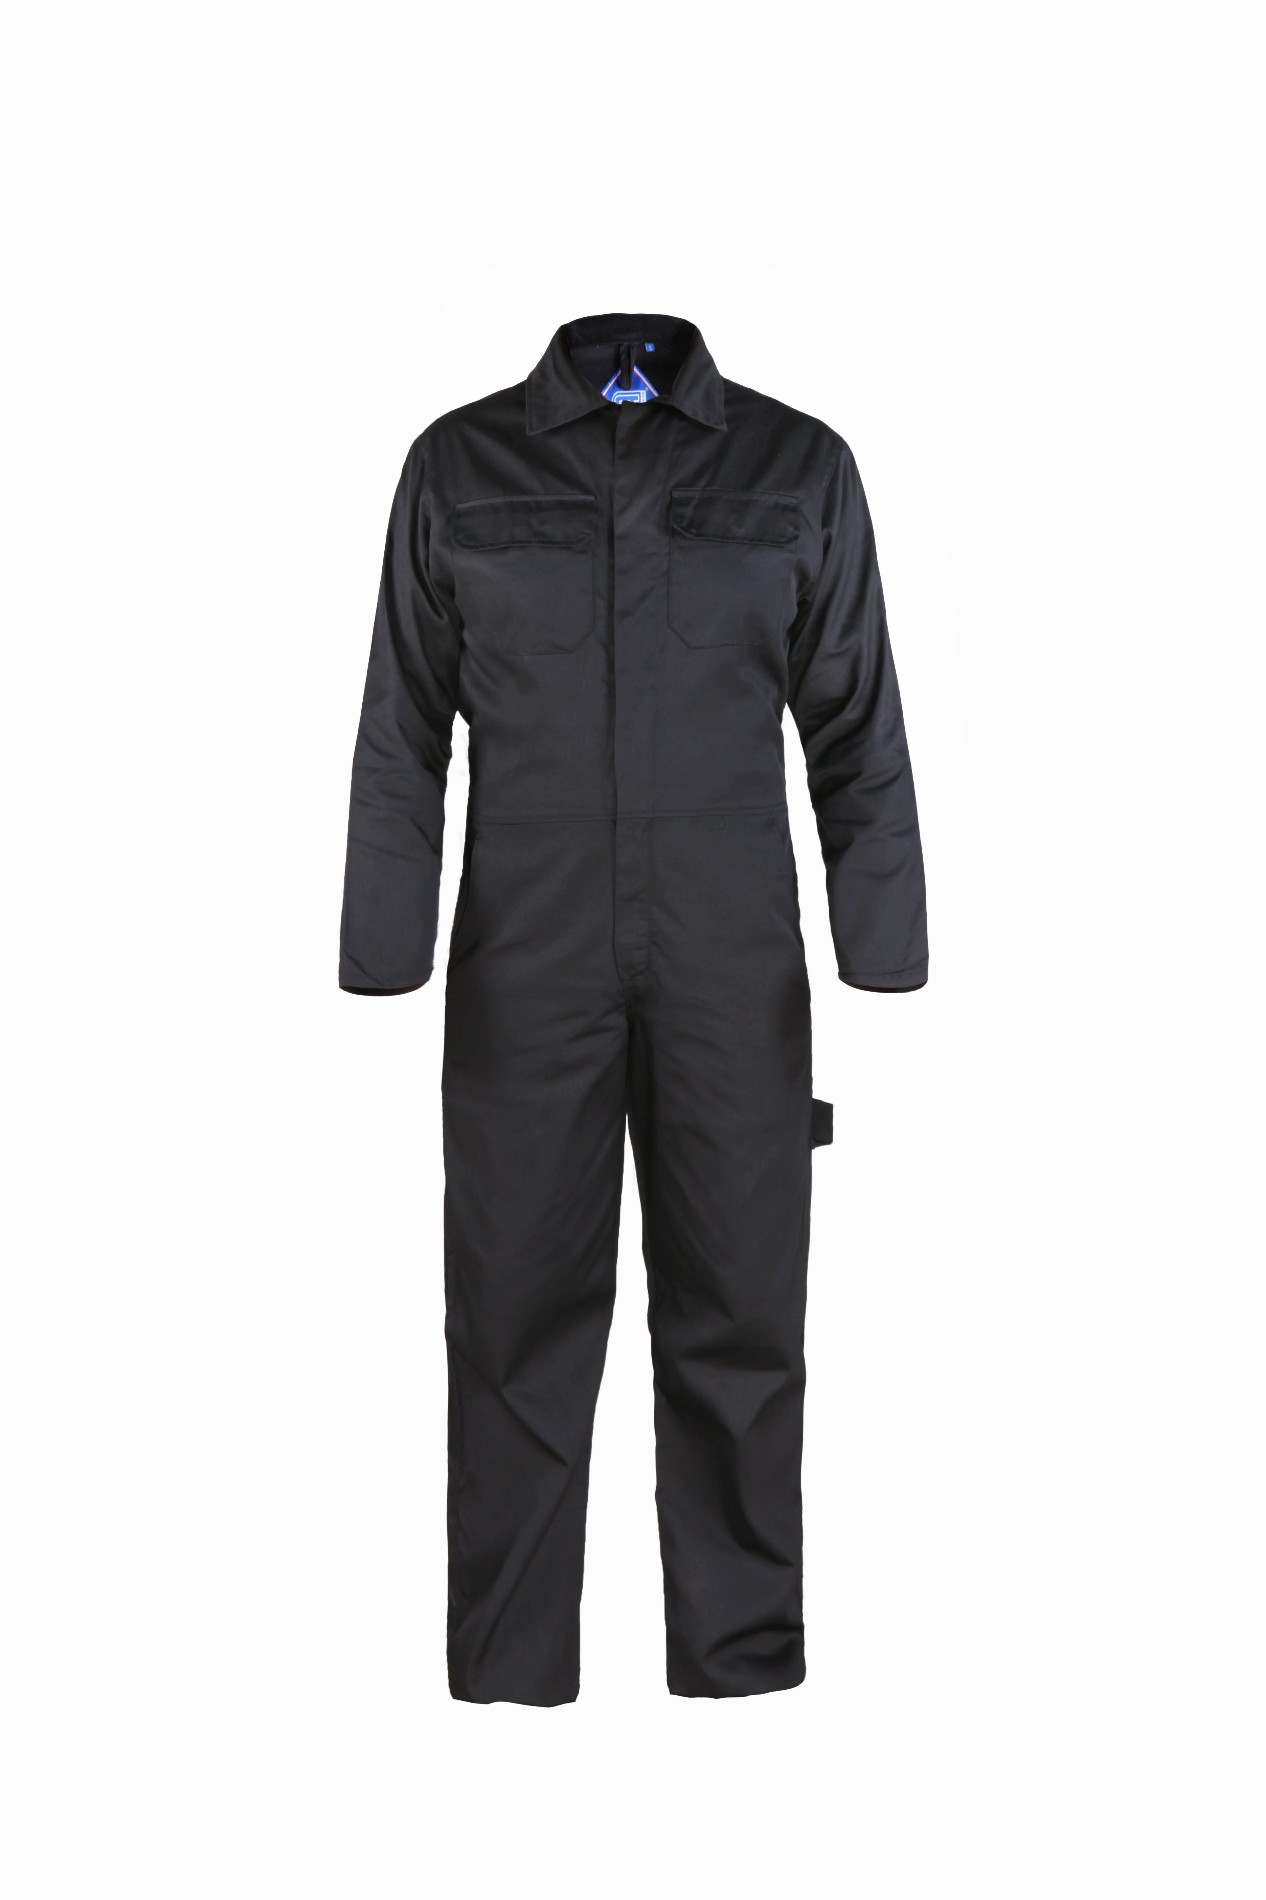 Cleaning method for anti-acid and anti-alkali working clothes